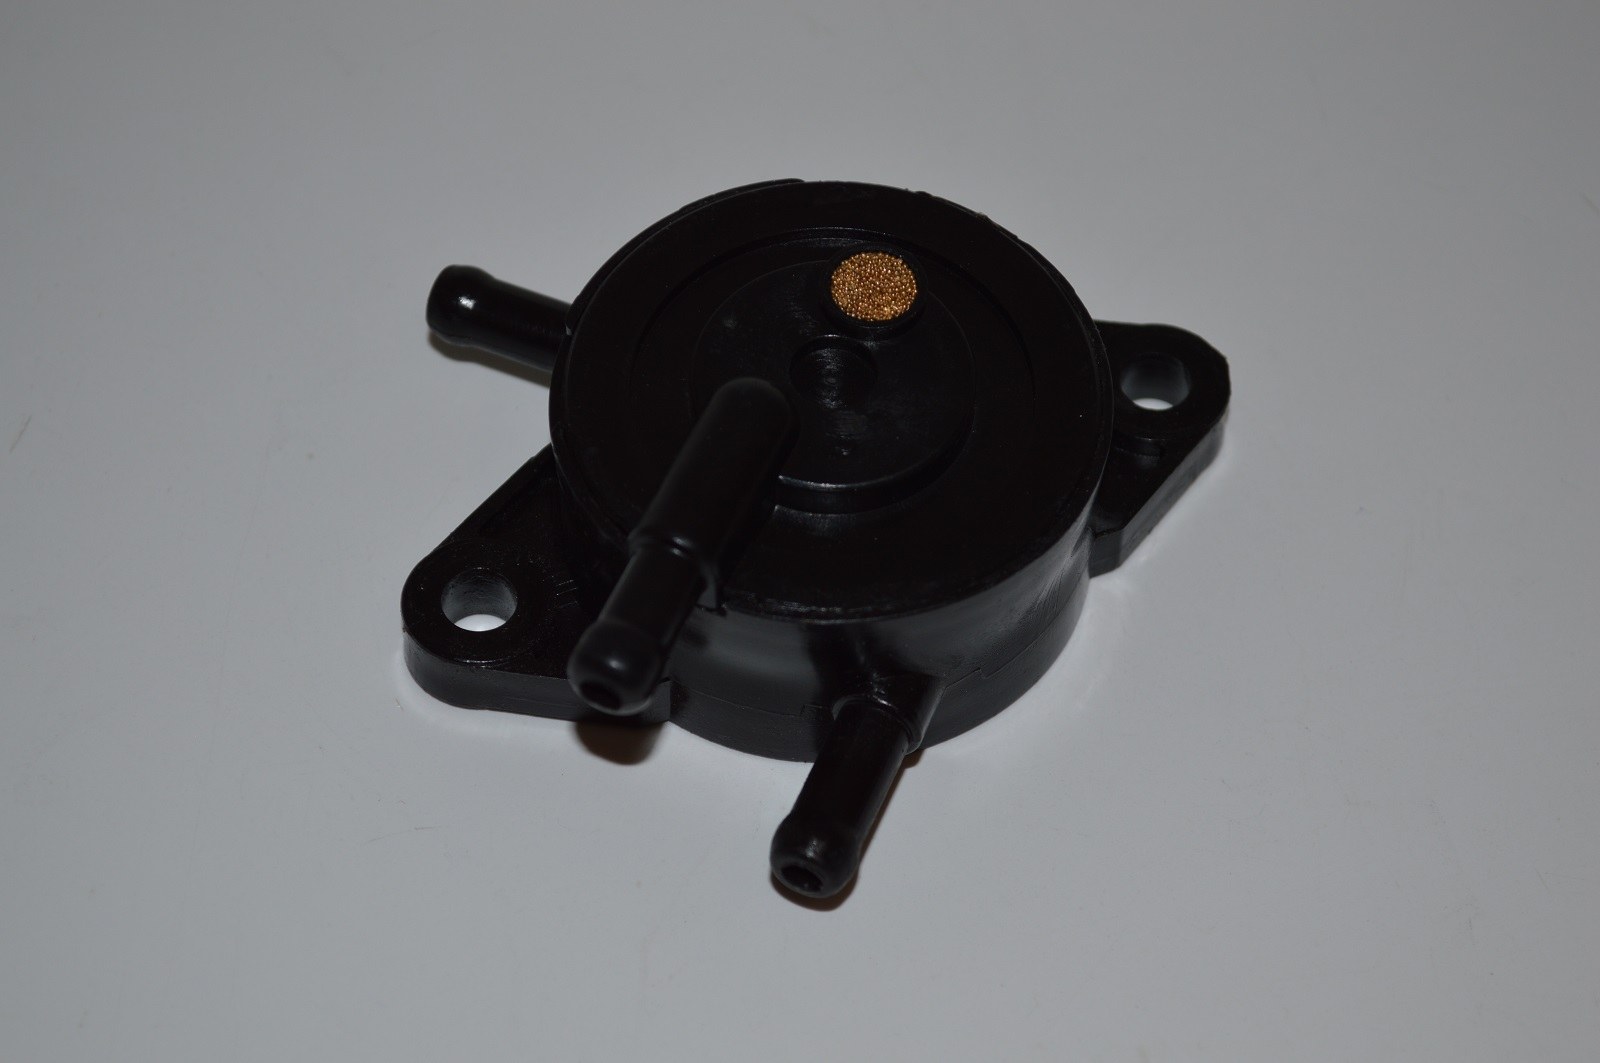 hight resolution of ezgo gas golf cart 2003 09 w mci engine replacement fuel pump 72873 g01